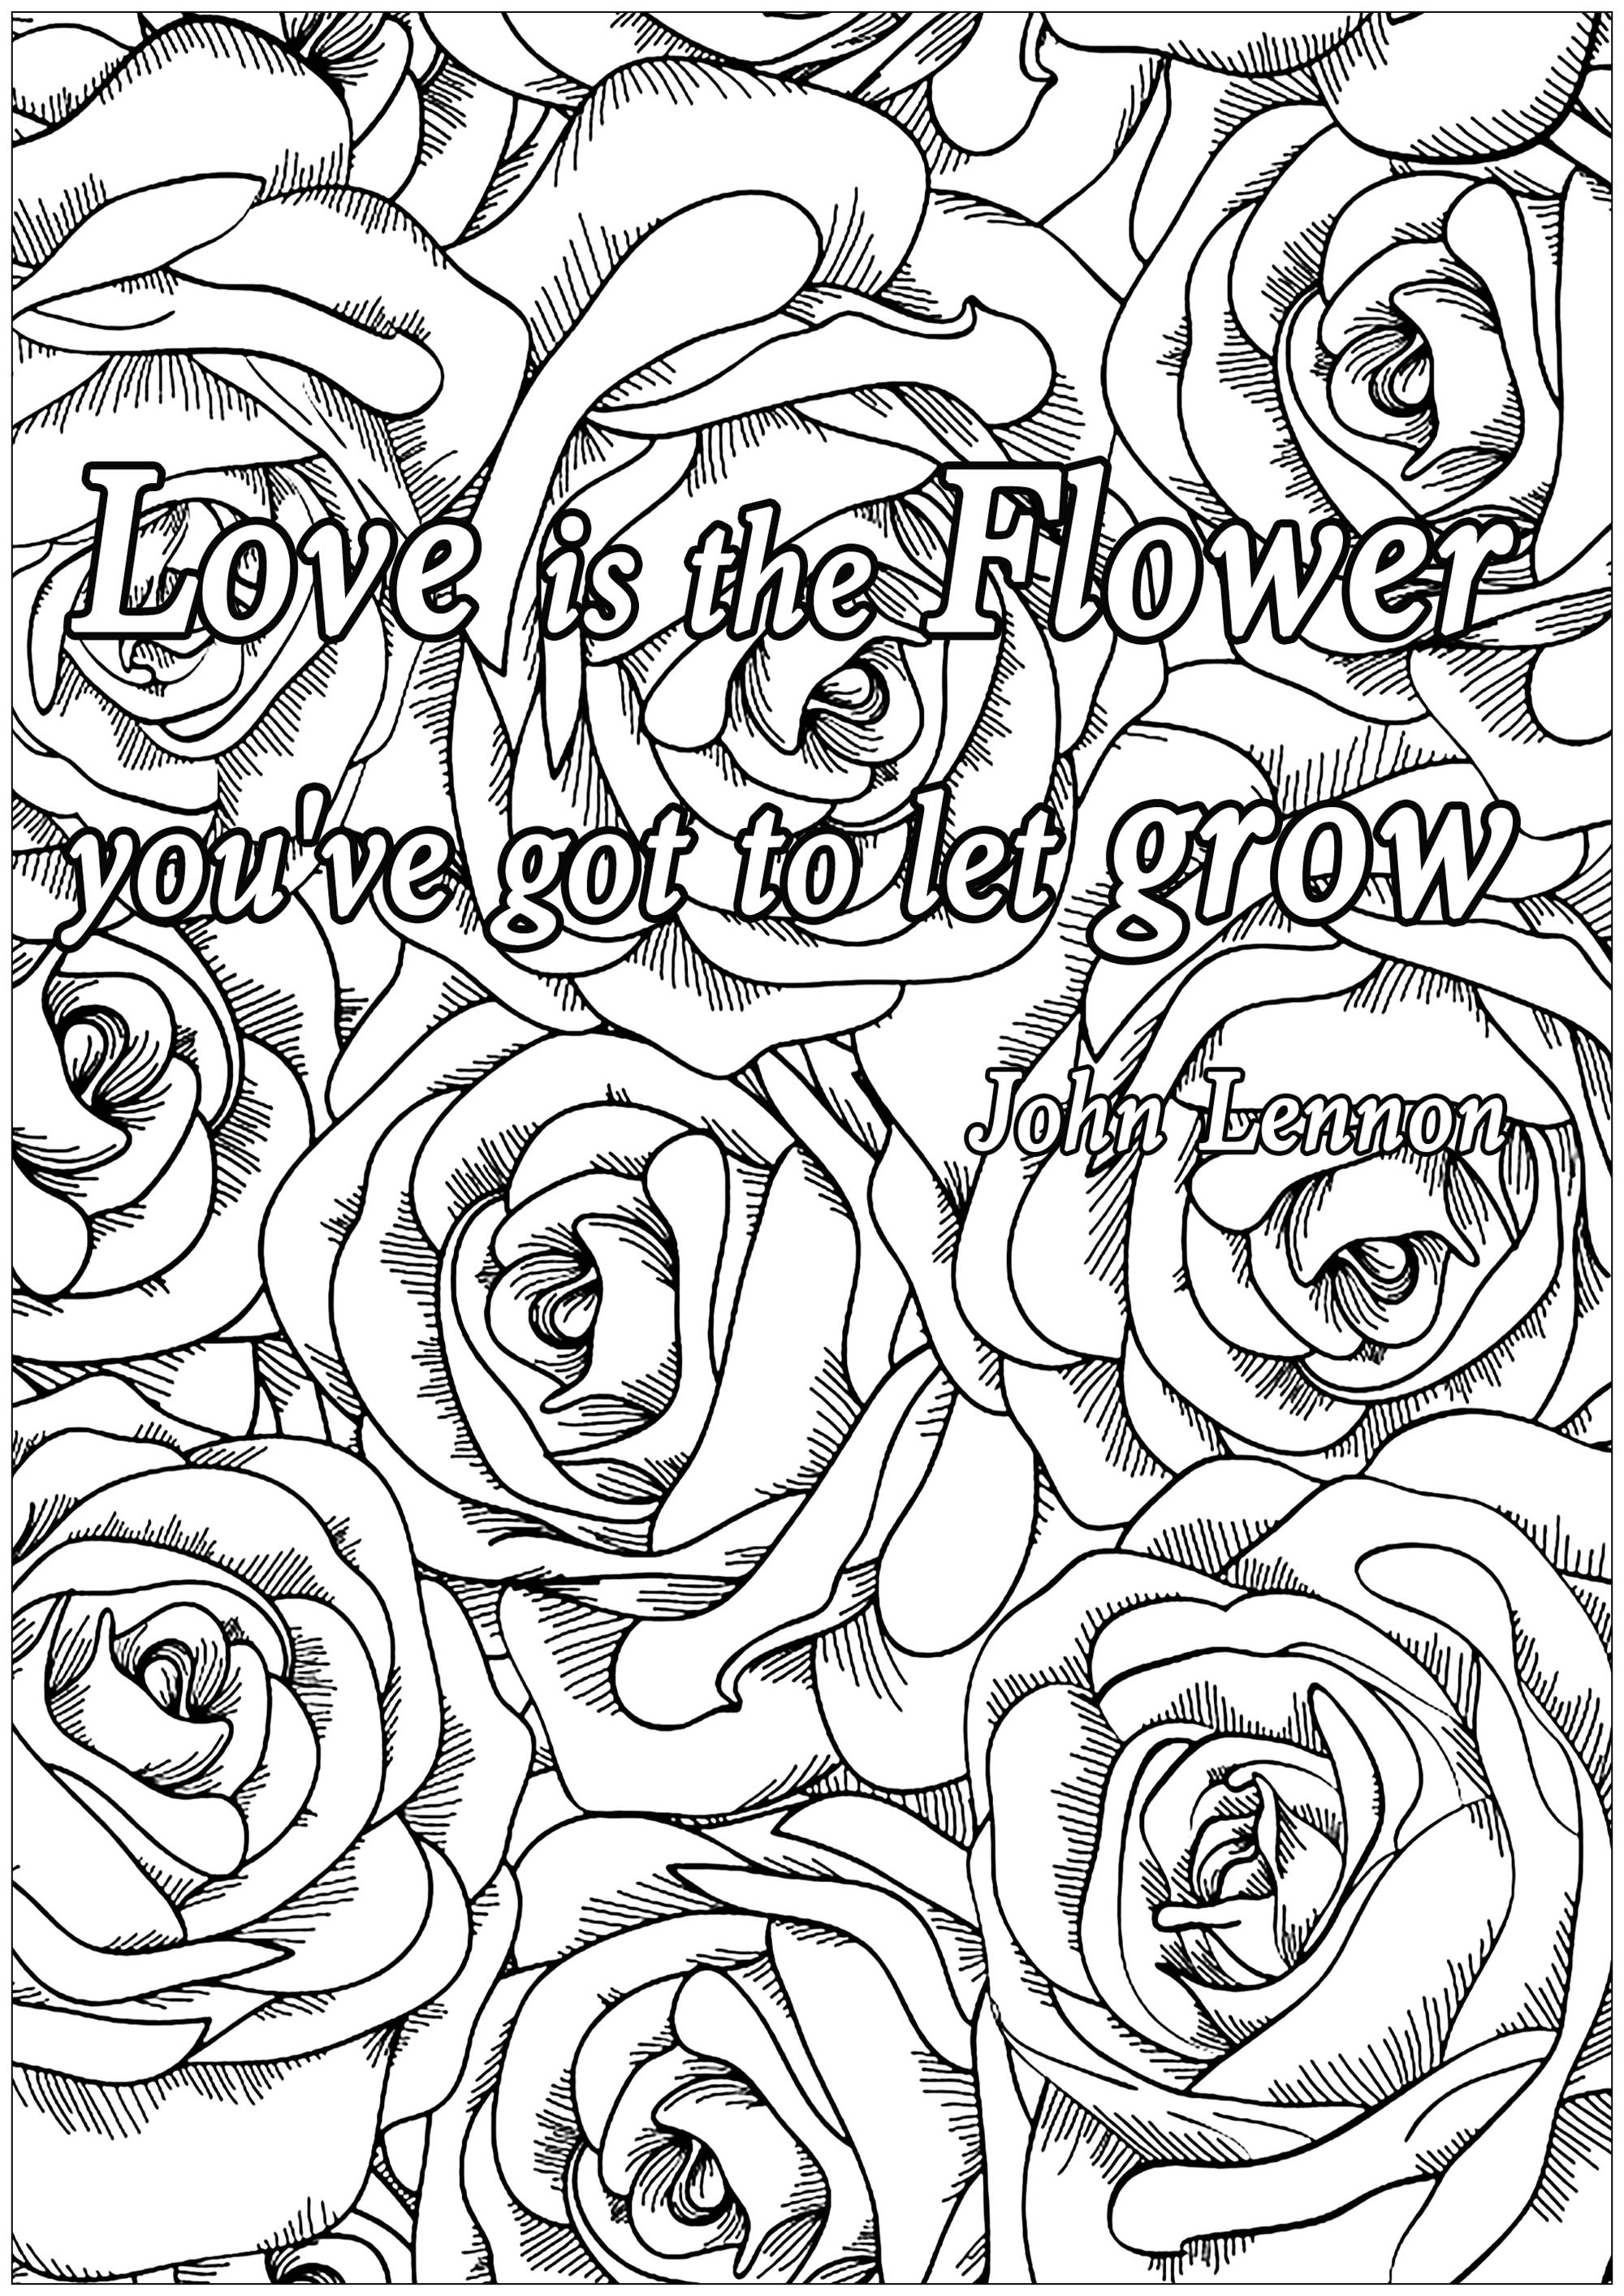 Love is the flower - Quotes Adult Coloring Pages   colouring pages for adults quotes